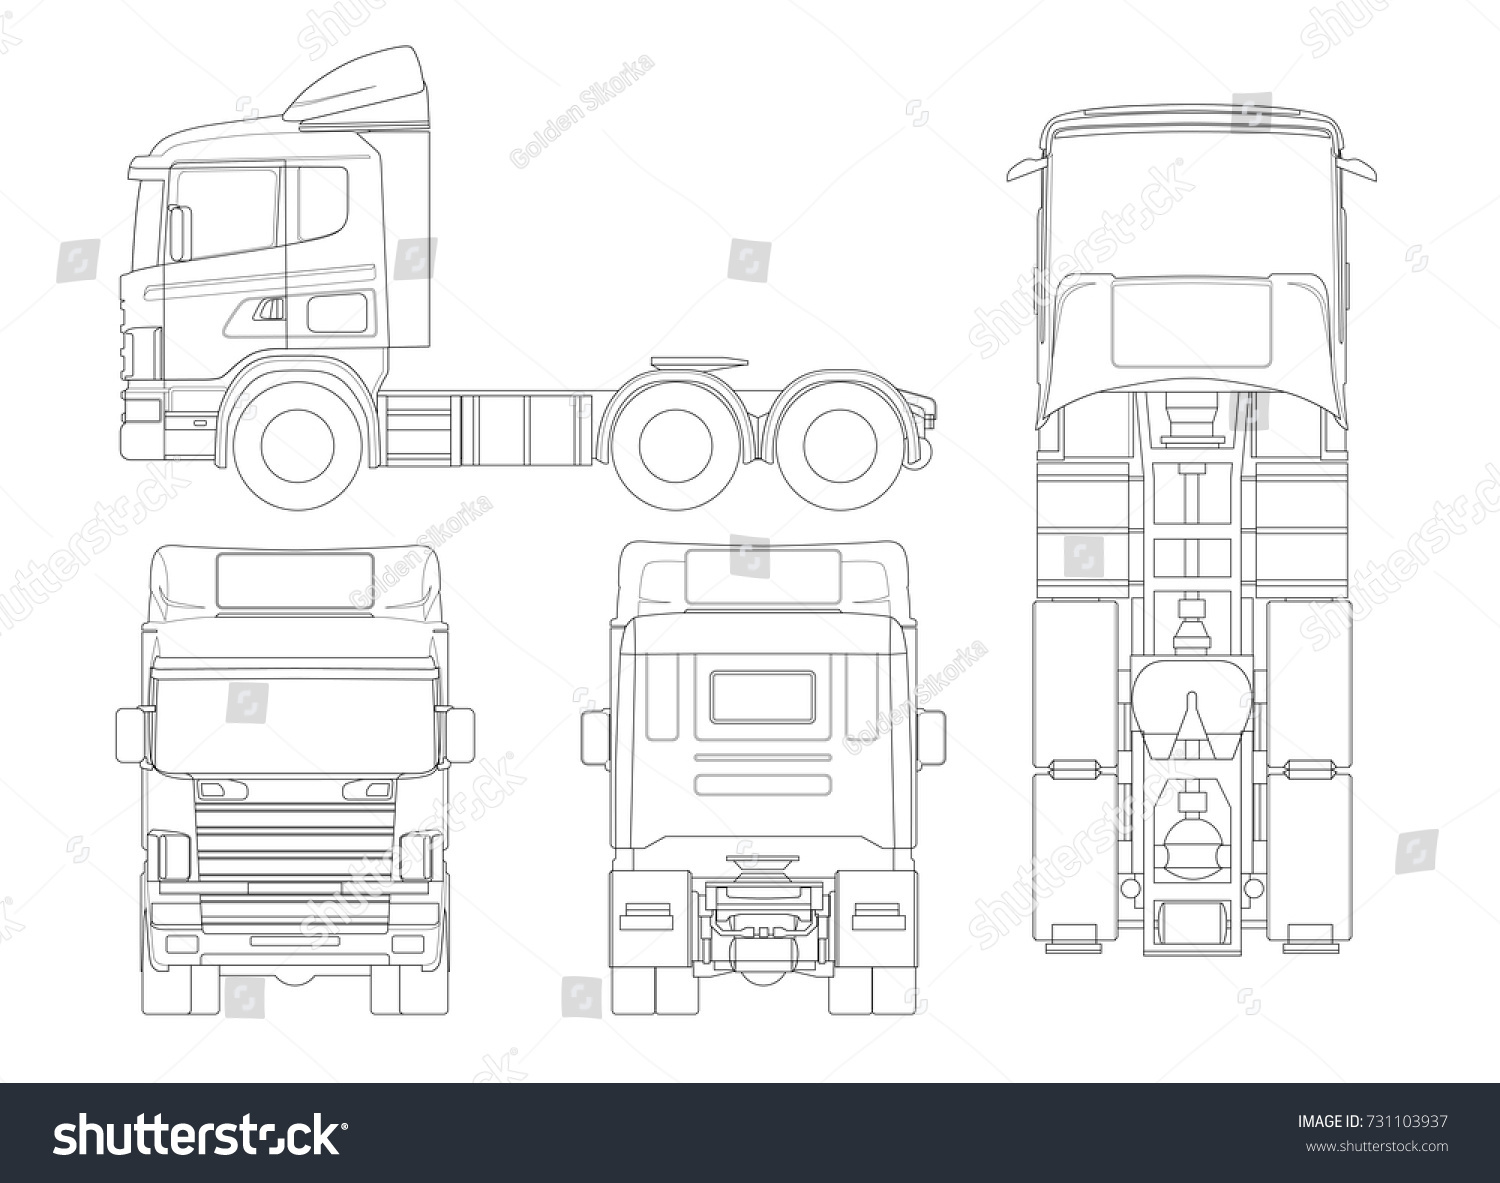 Trailer Truck Diagram Outline Wiring Diagrams Radio Frequency Circuit Design Repost Avaxhome Images Gallery